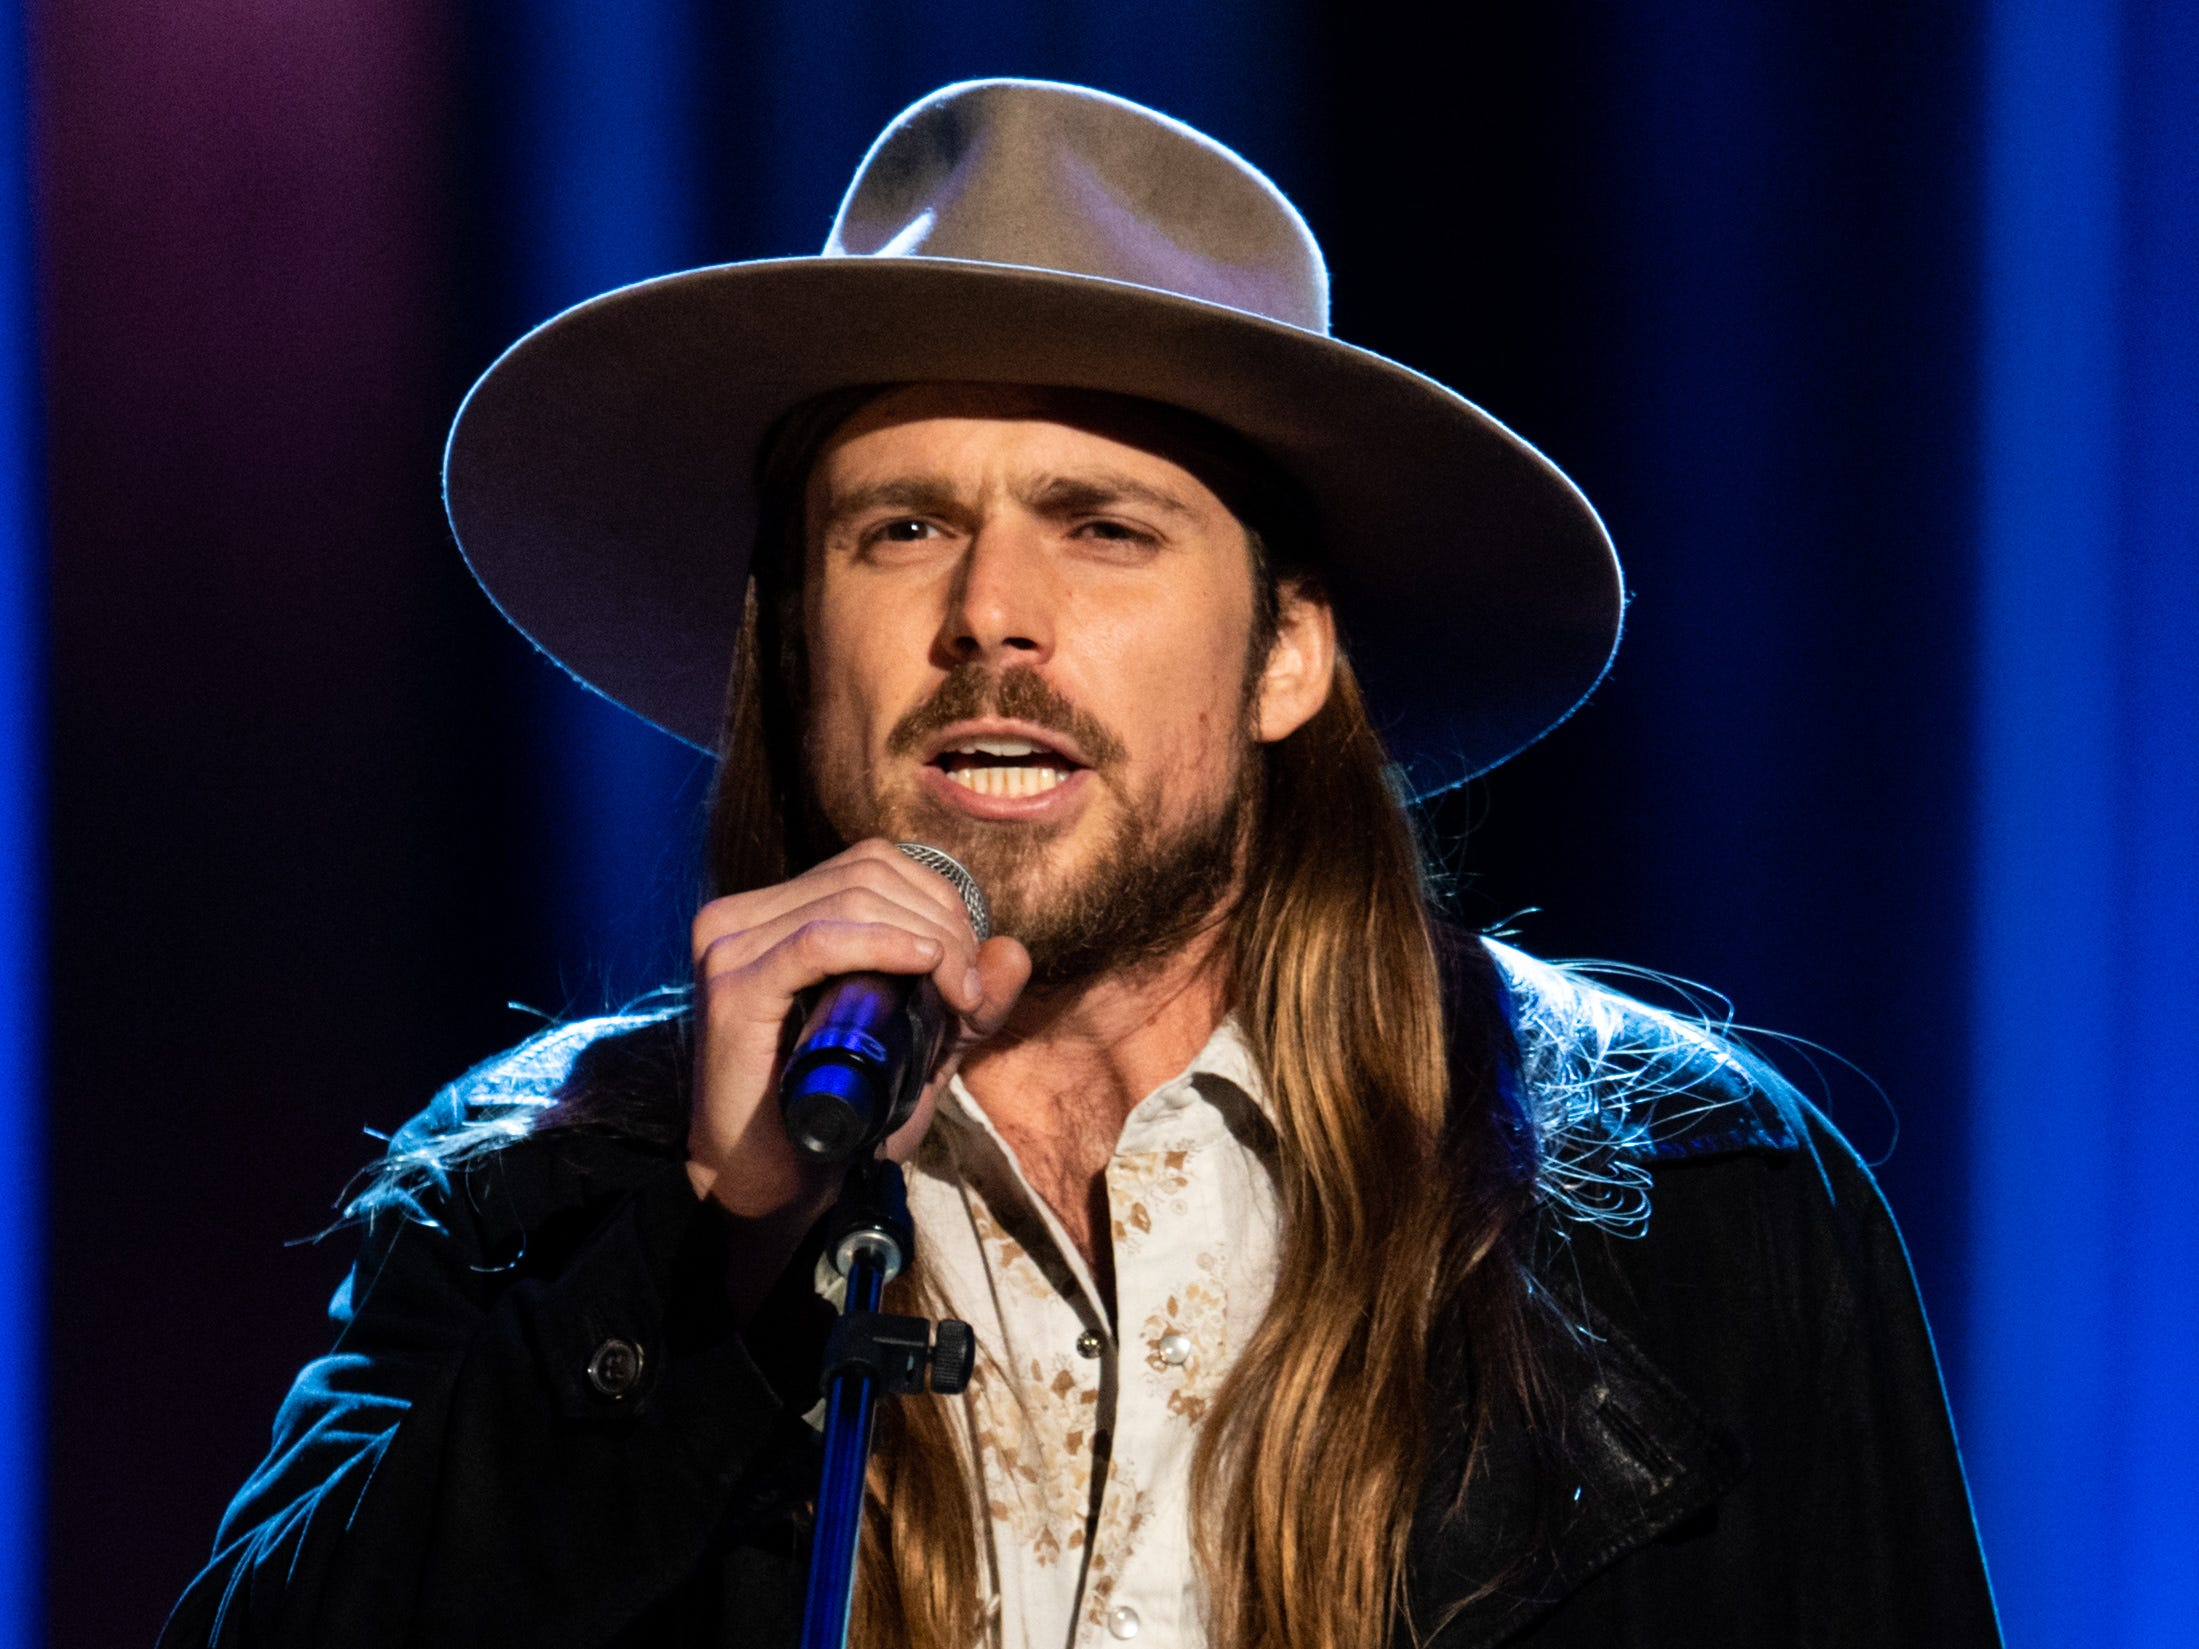 Lukas Nelson performs during the An Opry Salute to Ray Charles concert at The Grand Ole Opry in Nashville, Tenn., Monday, Oct. 8, 2018.